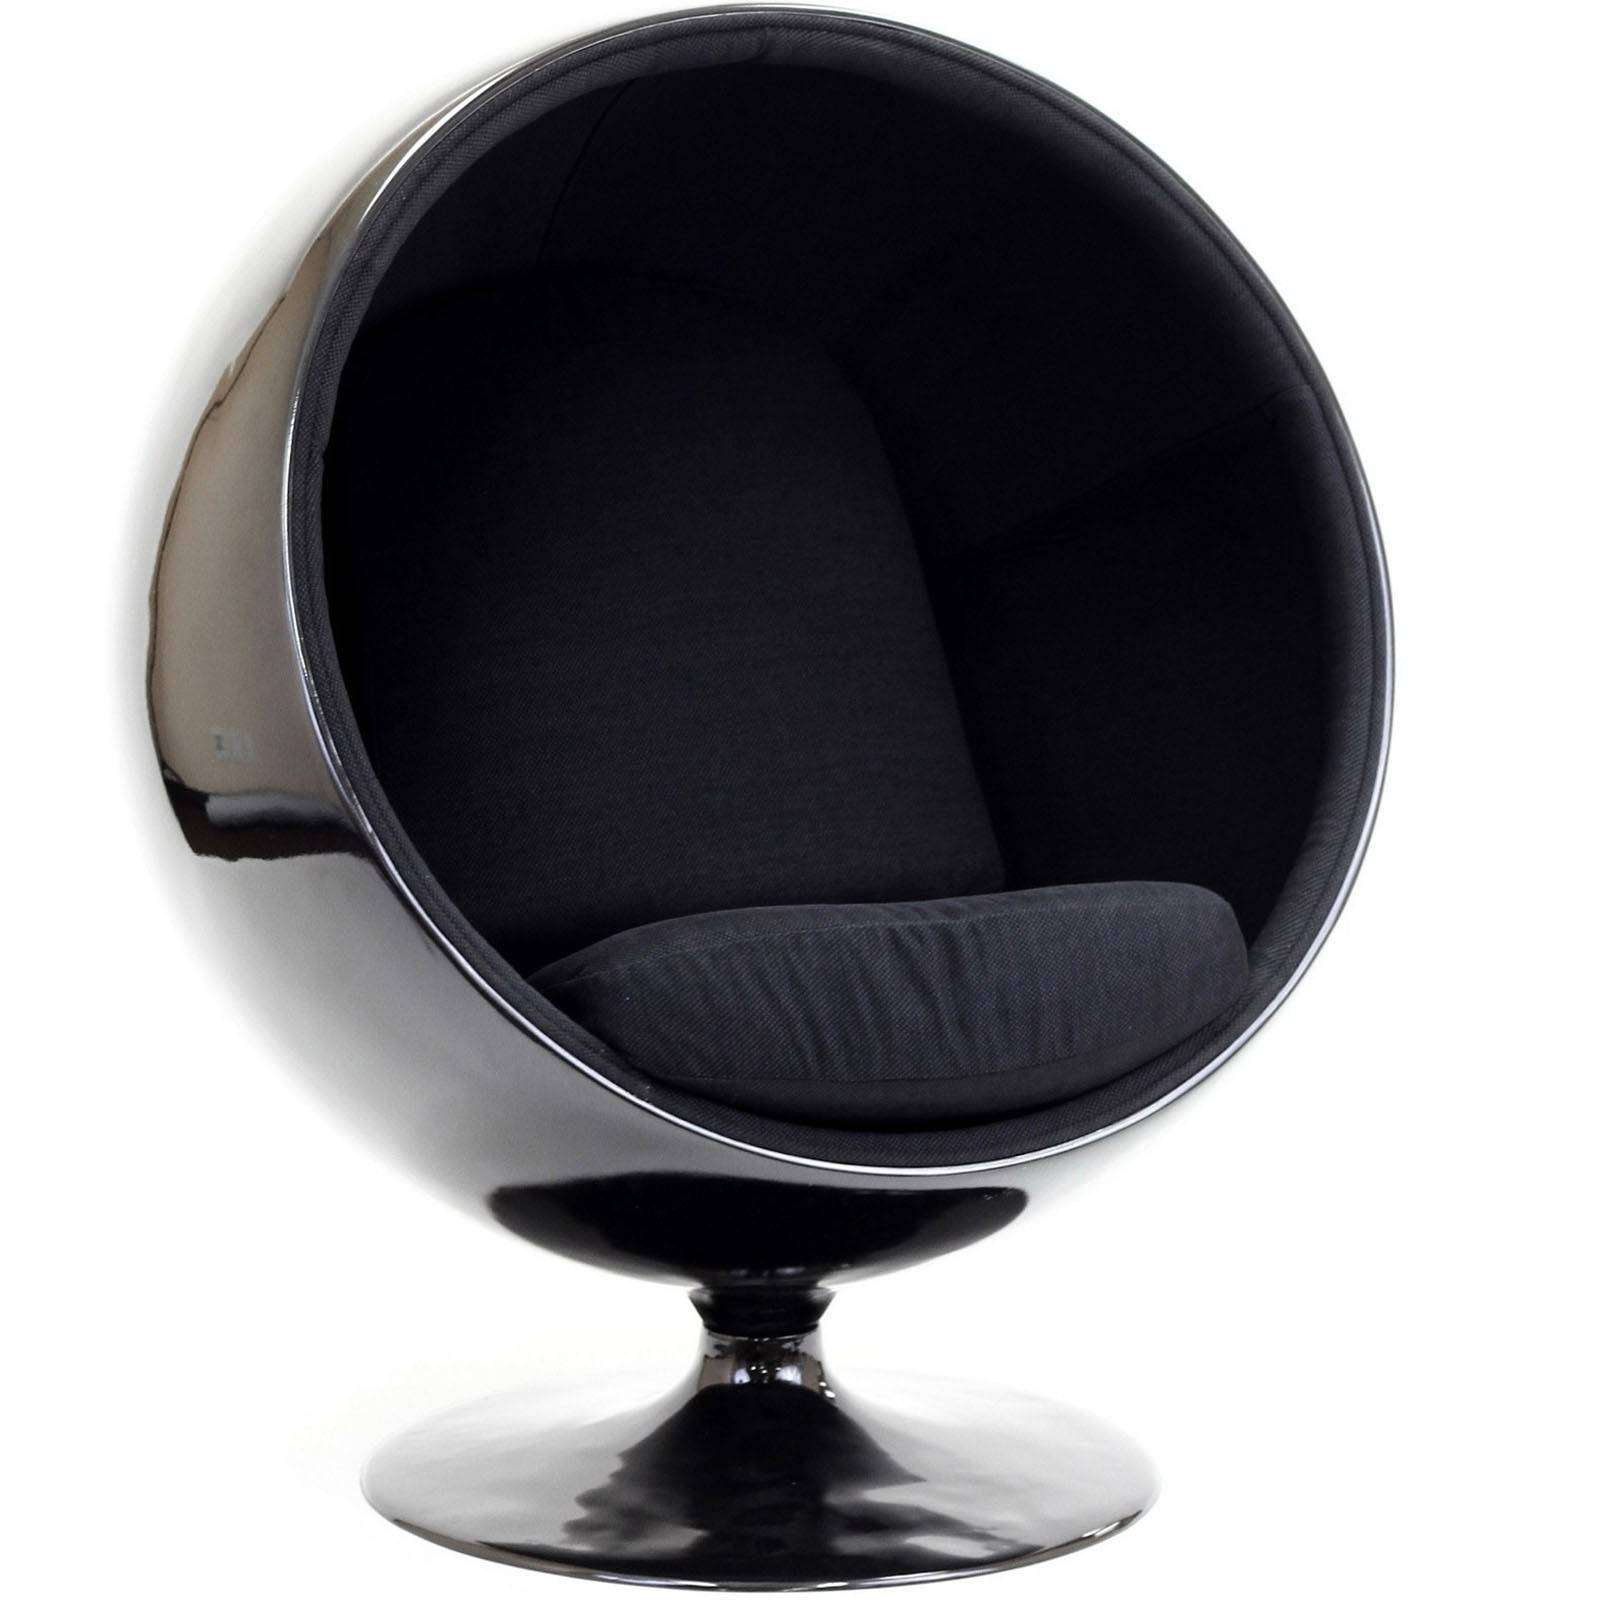 Eero aarnio style ball chair Egg pod ball chair